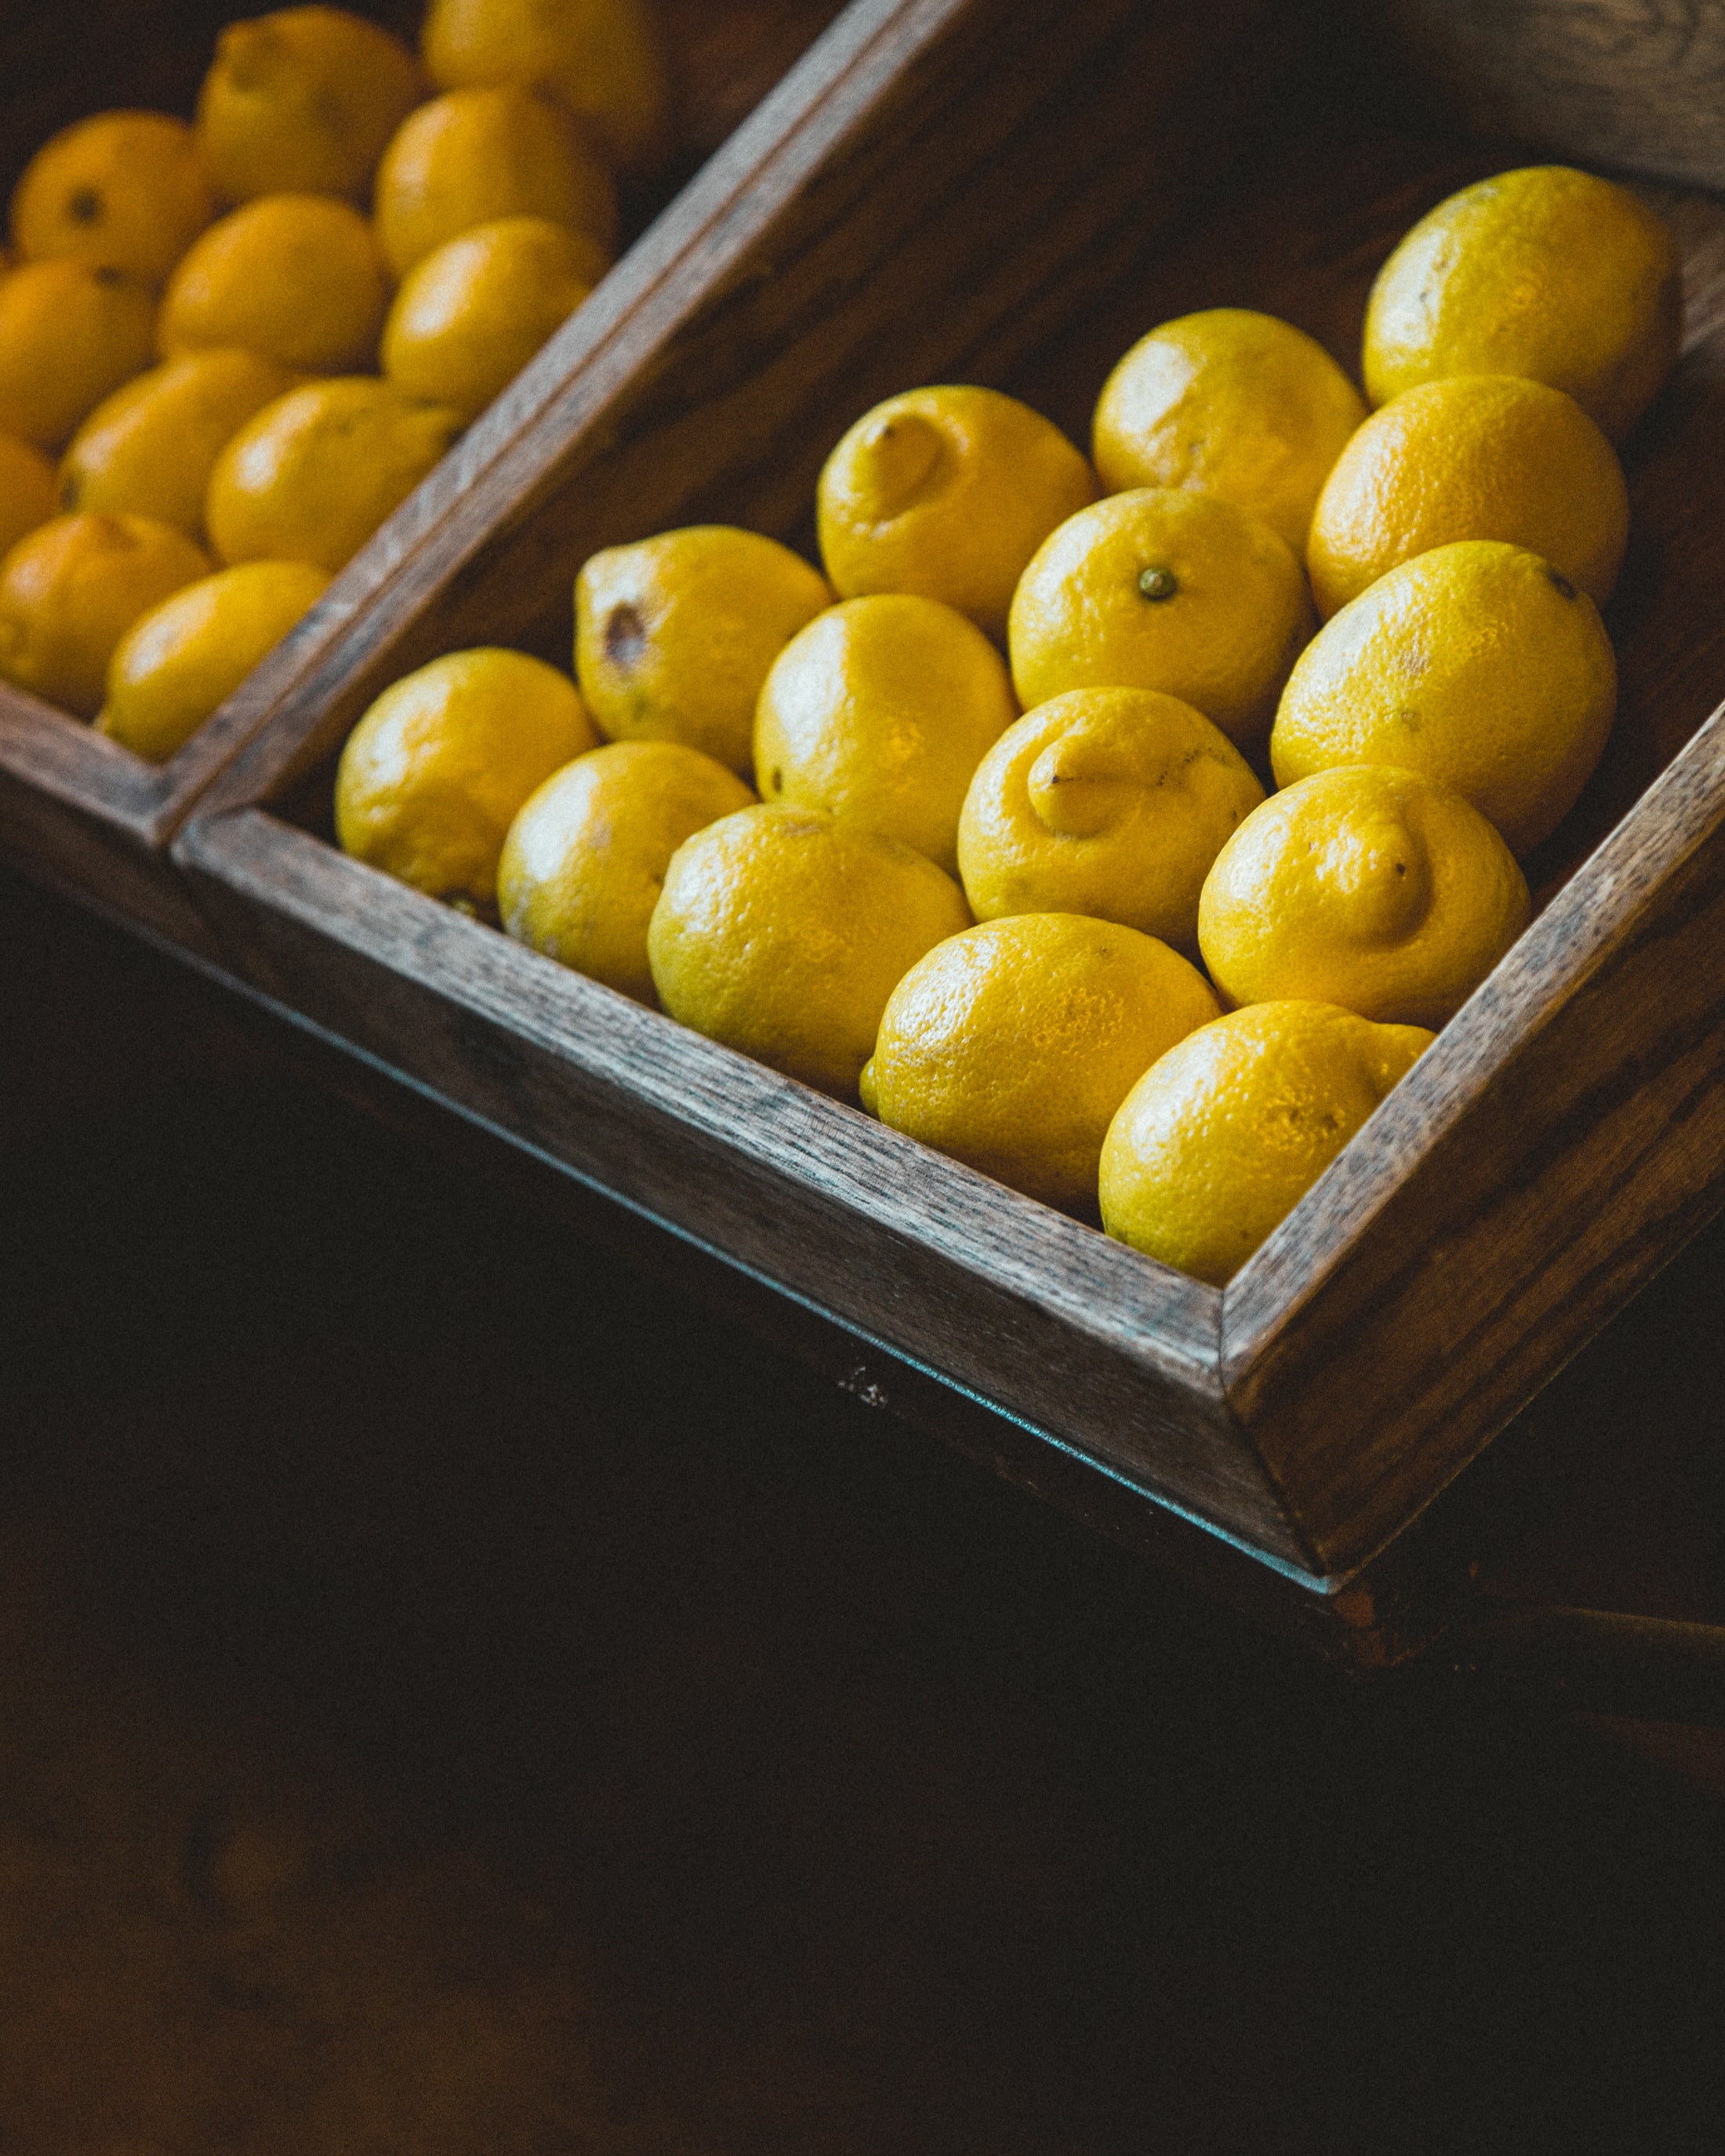 bunch of lemons on wooden rack